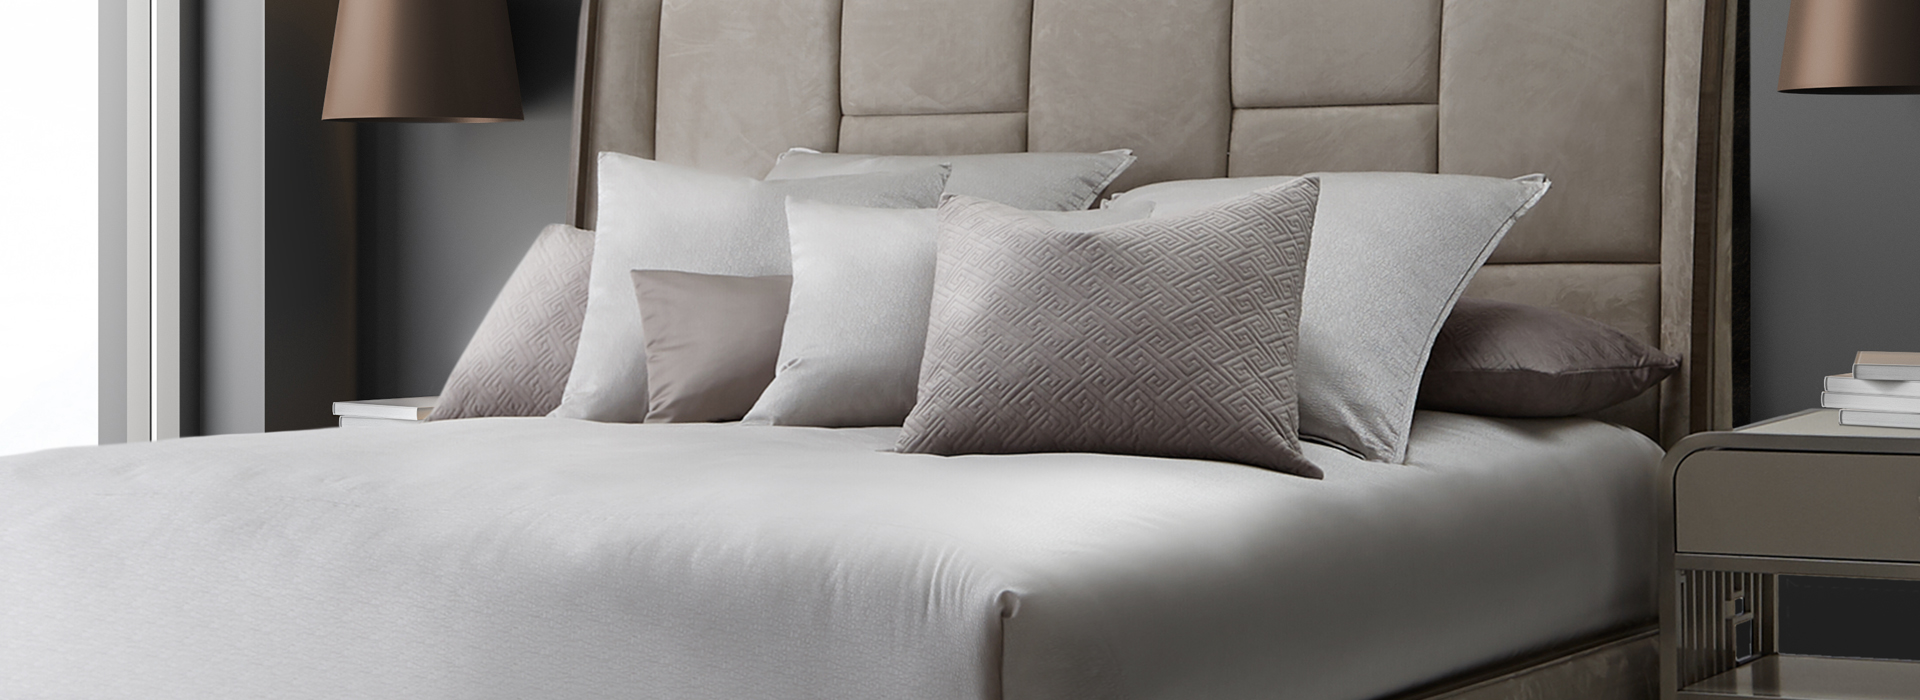 796bb8d54669 41+ Luxembourg Luxury Bedding Set Michael Amini Bedding - Michael ...